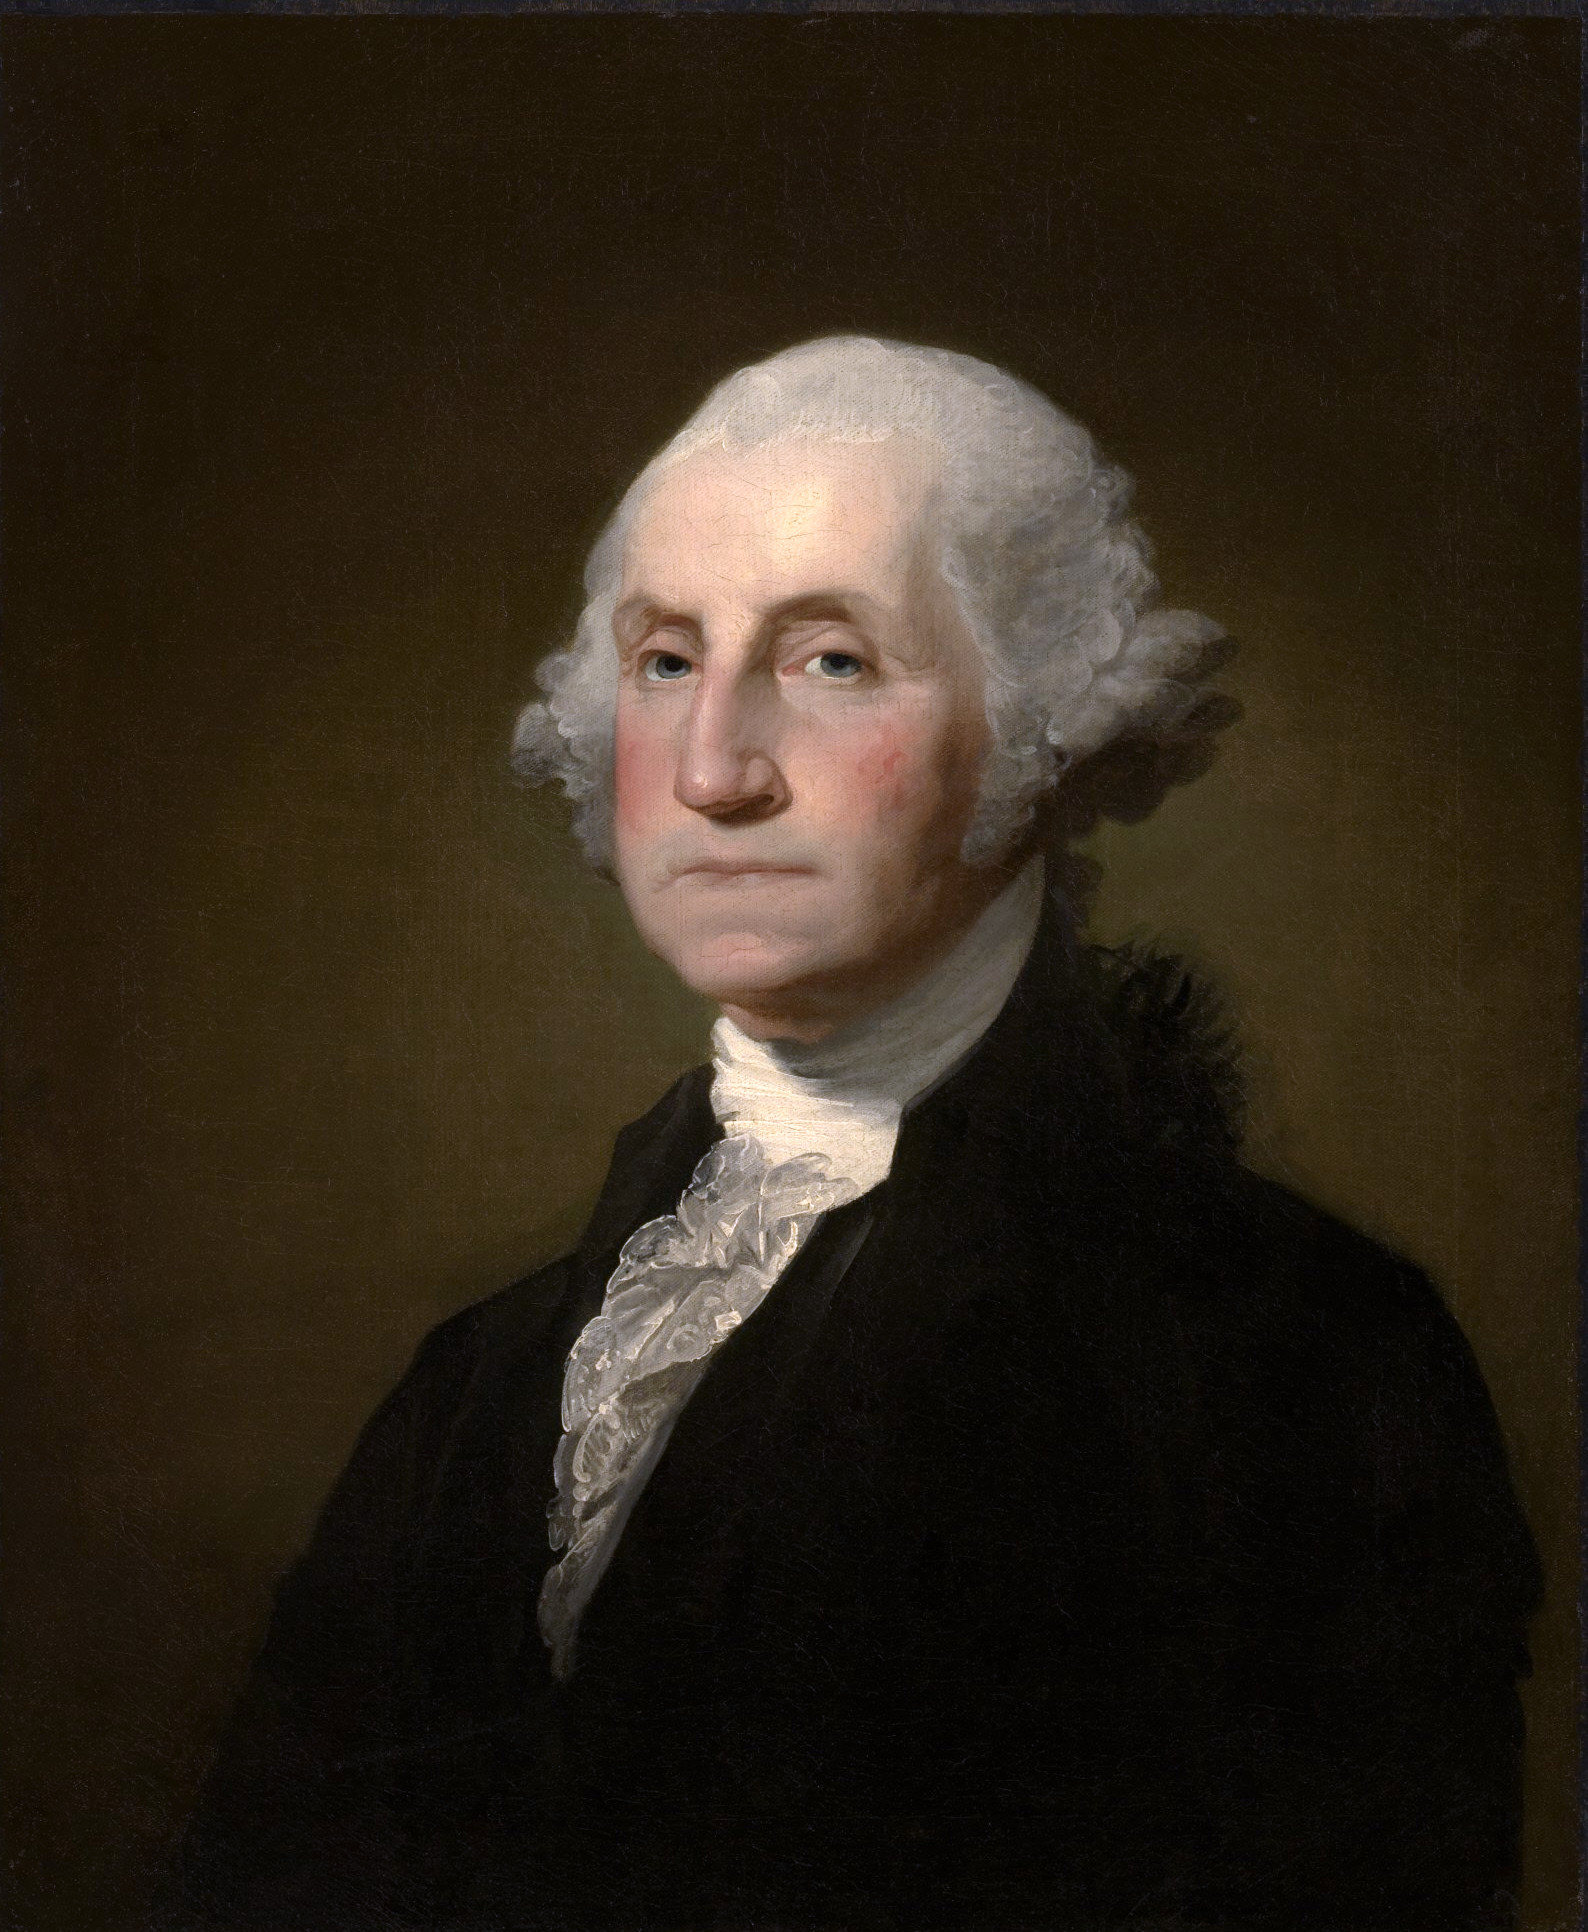 George Washington |easy